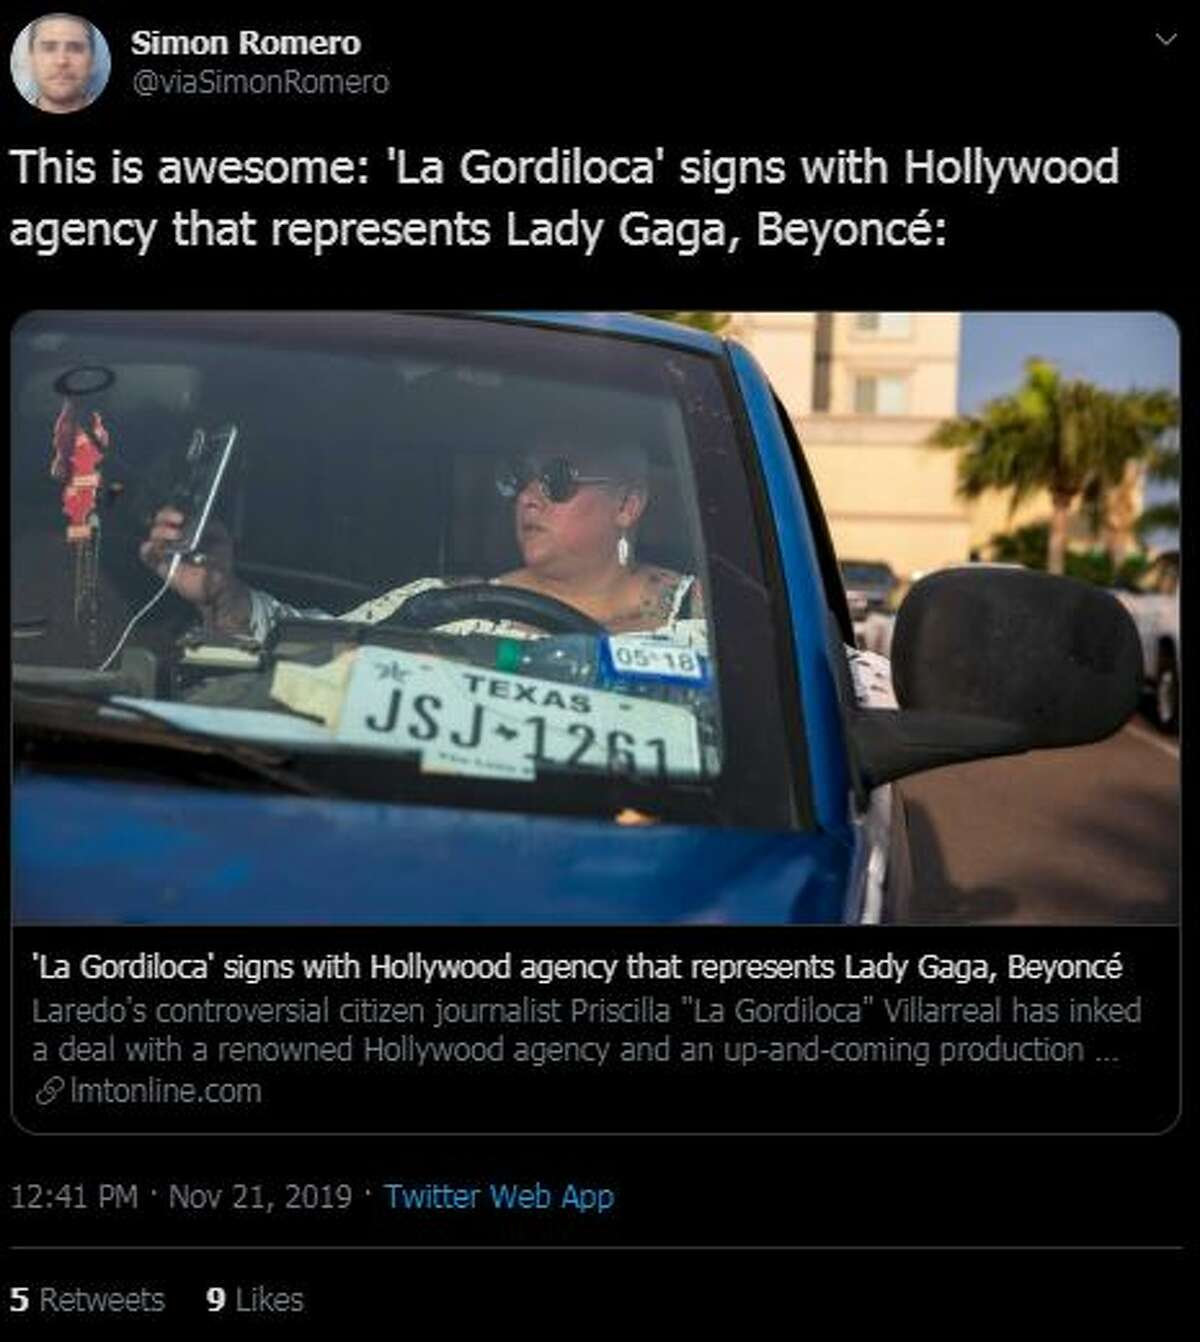 News of 'La Gordiloca' signing with a Hollywood talent agency spread around Laredo, with locals reacting to news with both celebration and derision.